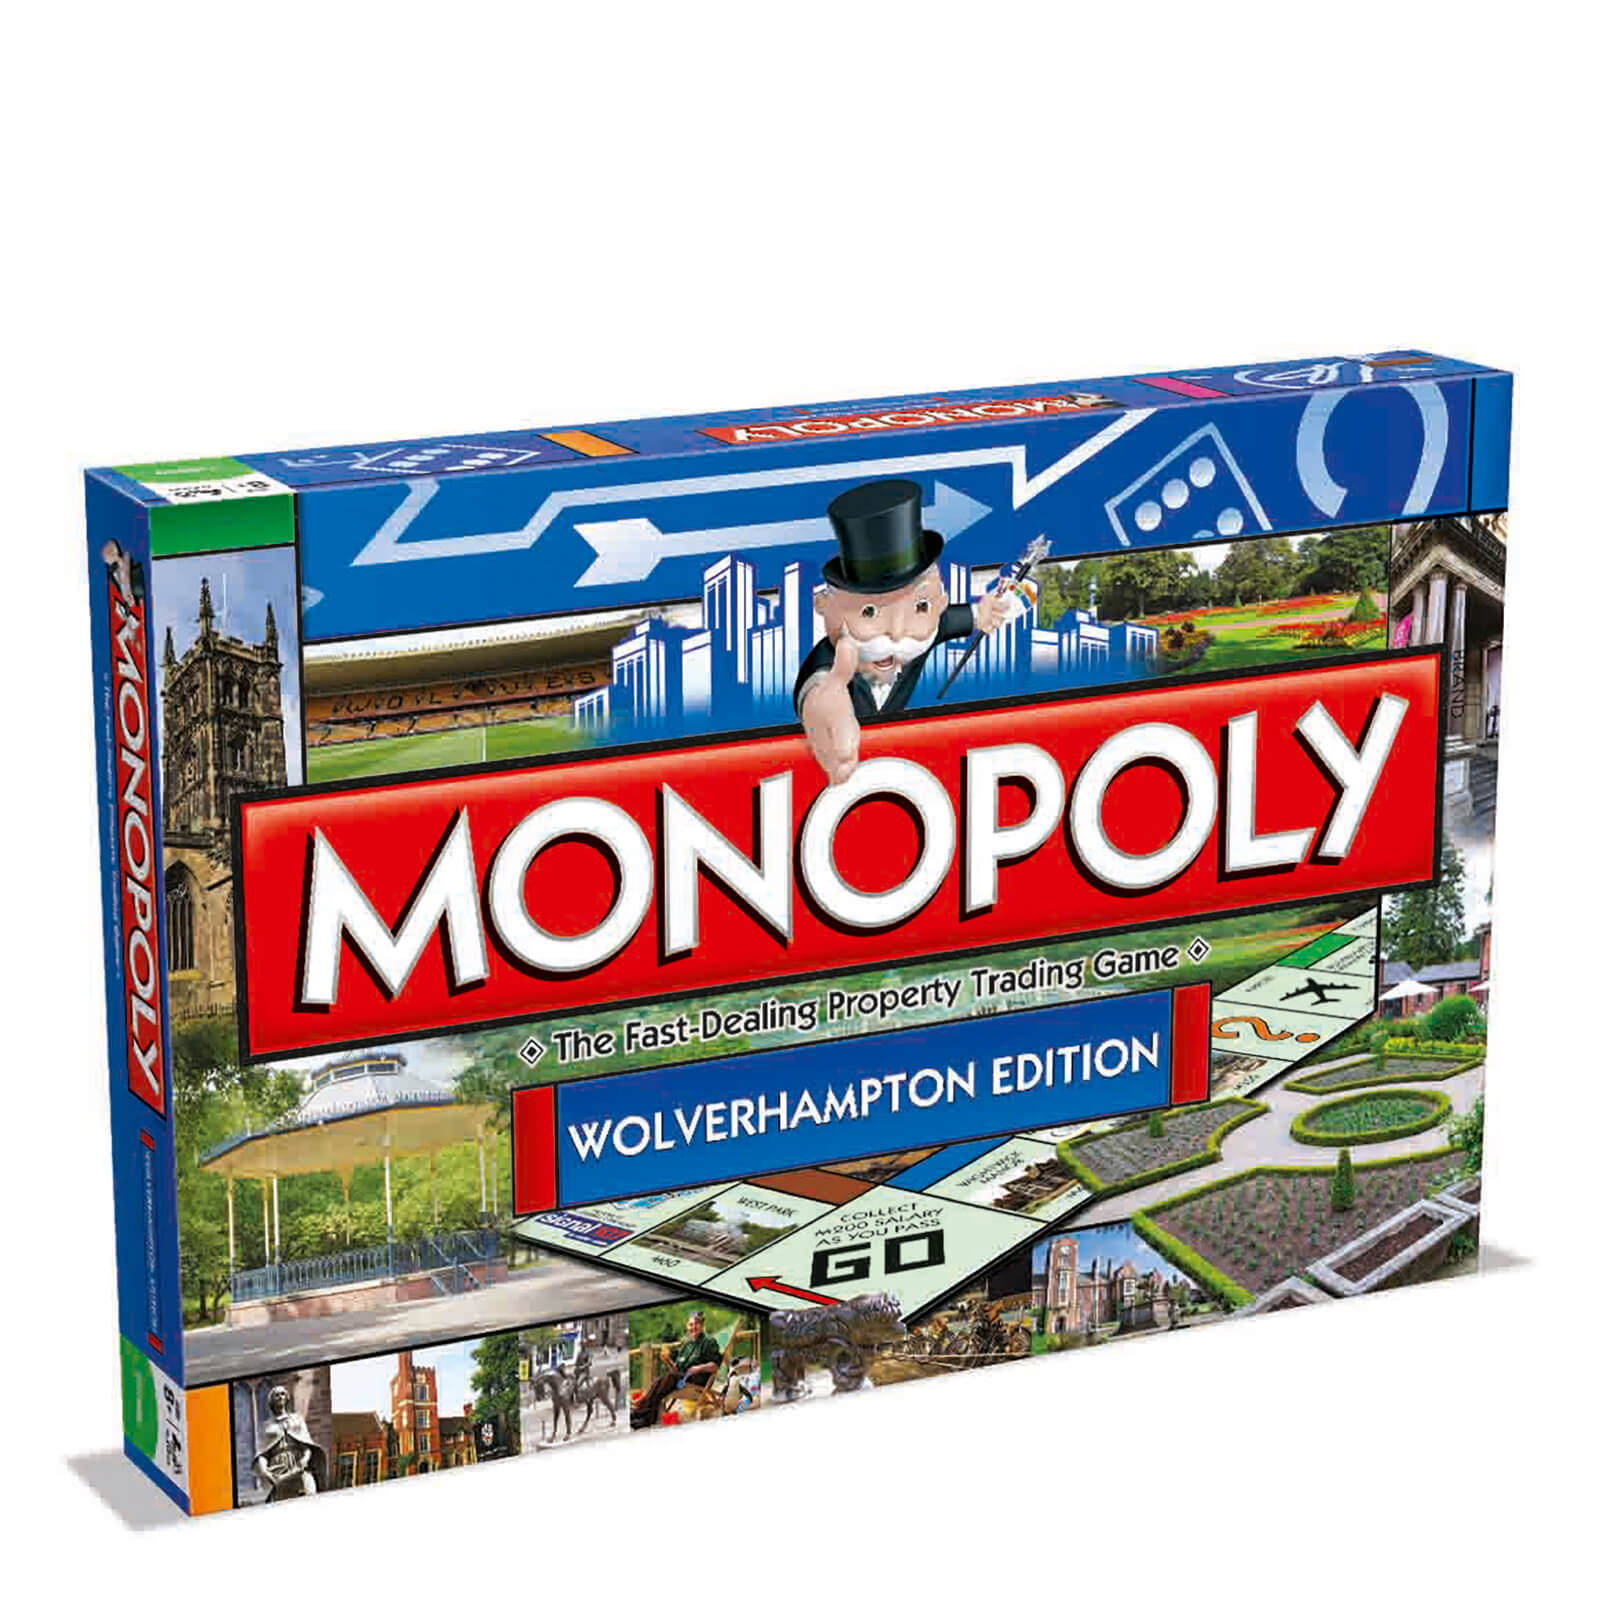 Image of Monopoly Board Game - Wolverhampton Edition